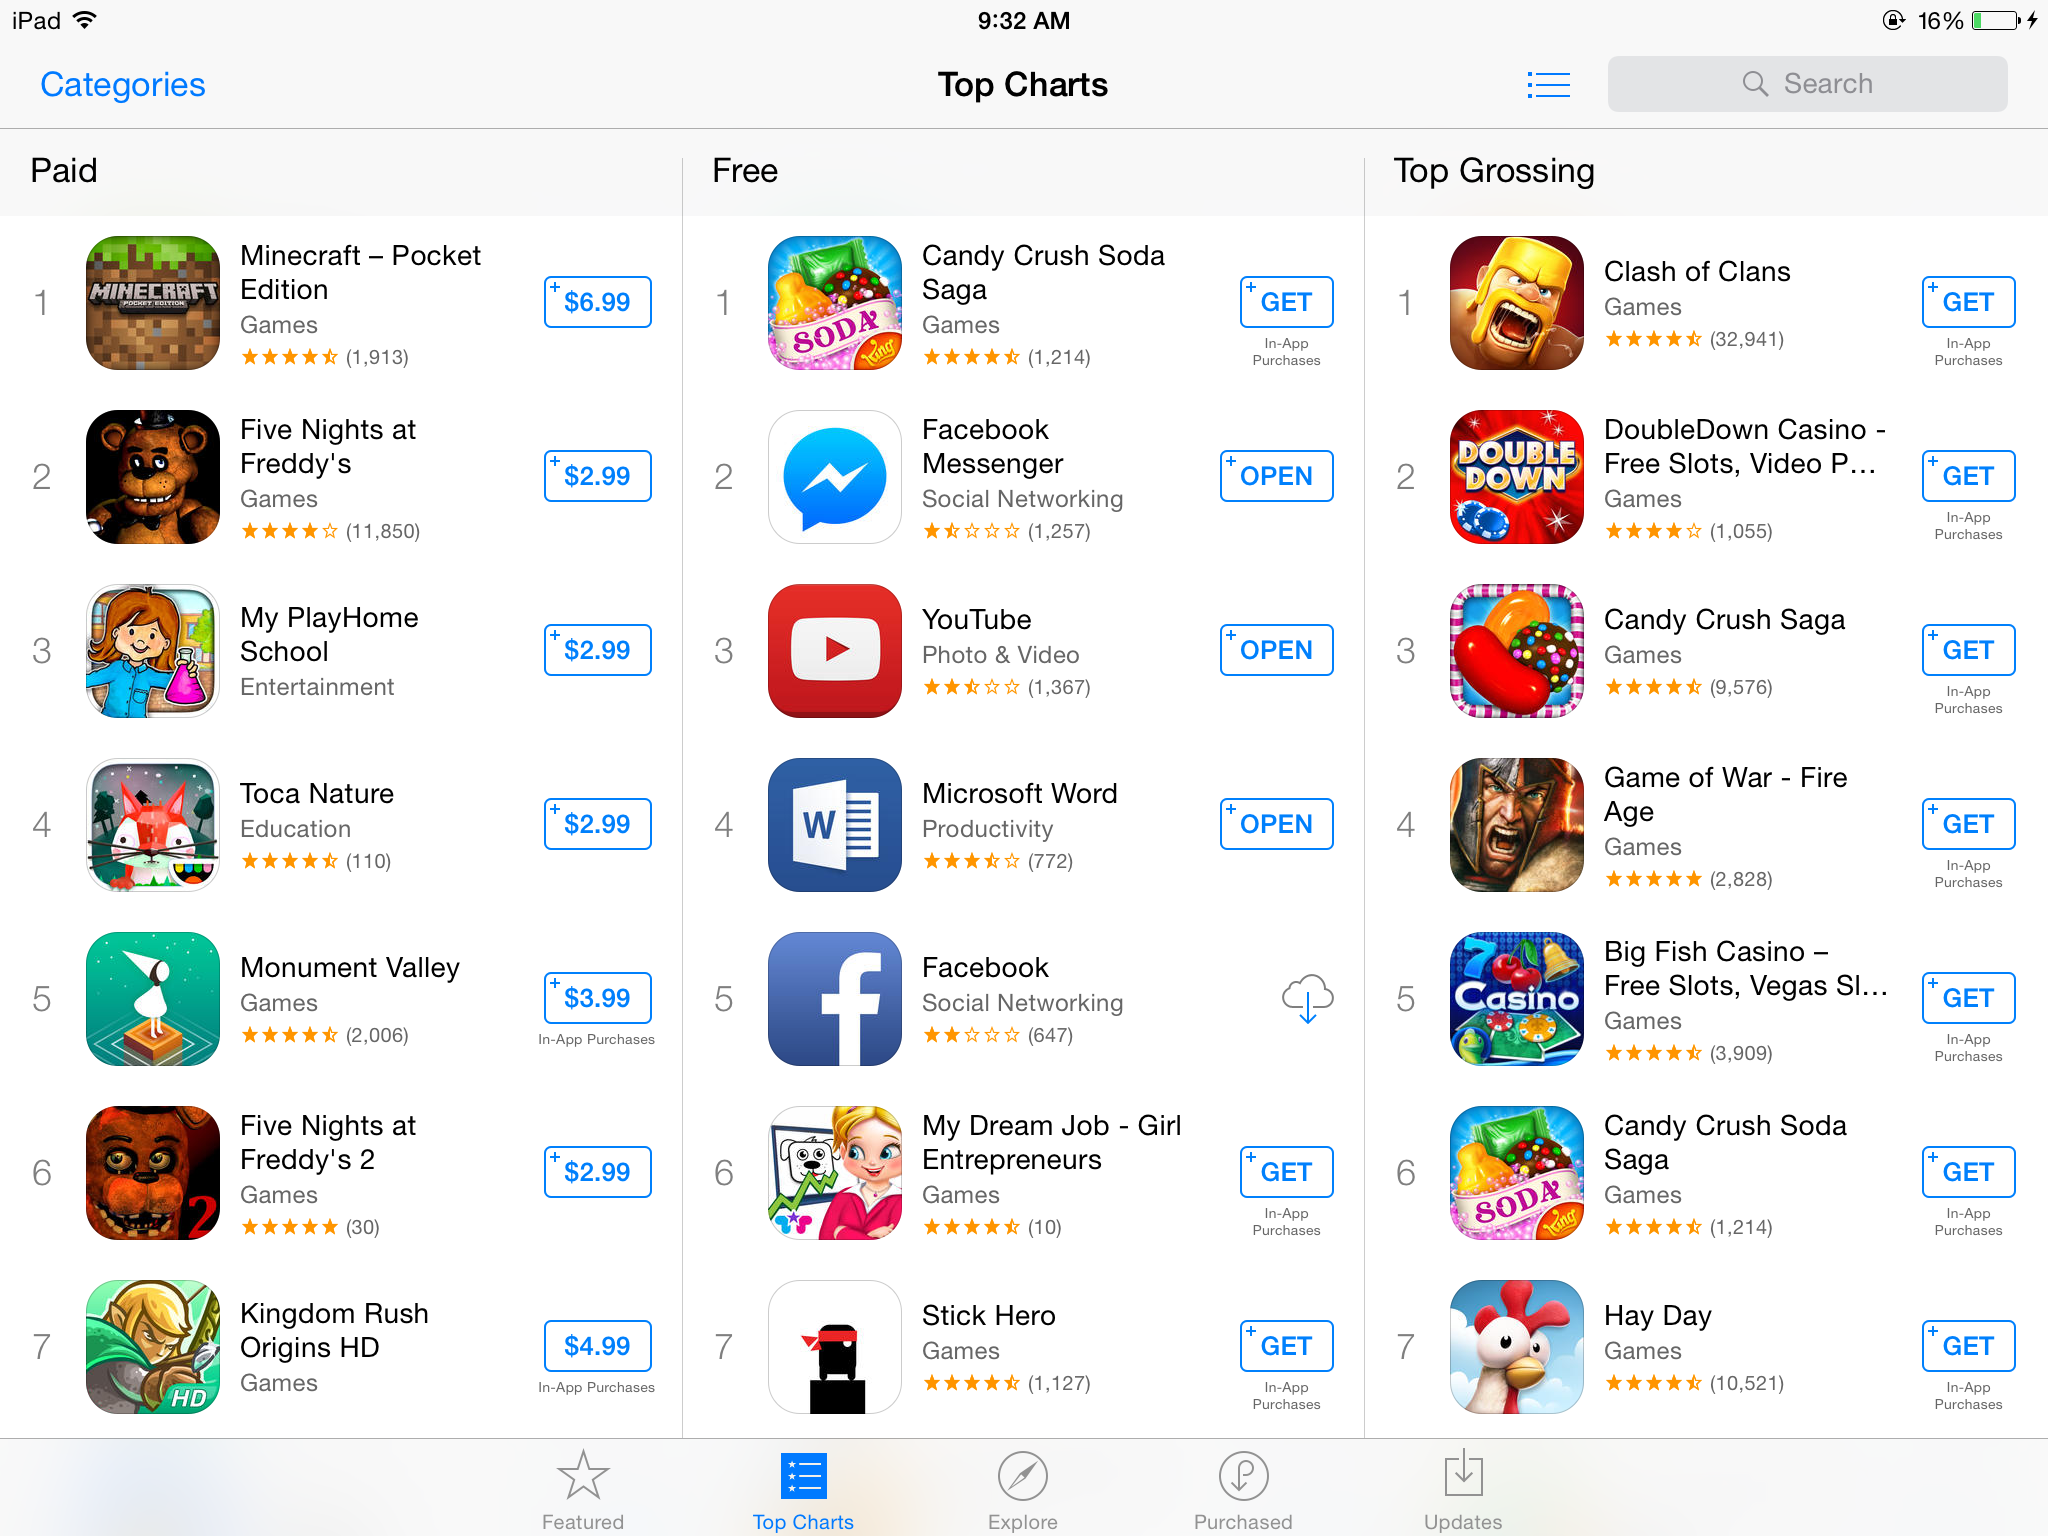 Apple Changes 'free' Apps To 'get' In App Store Business